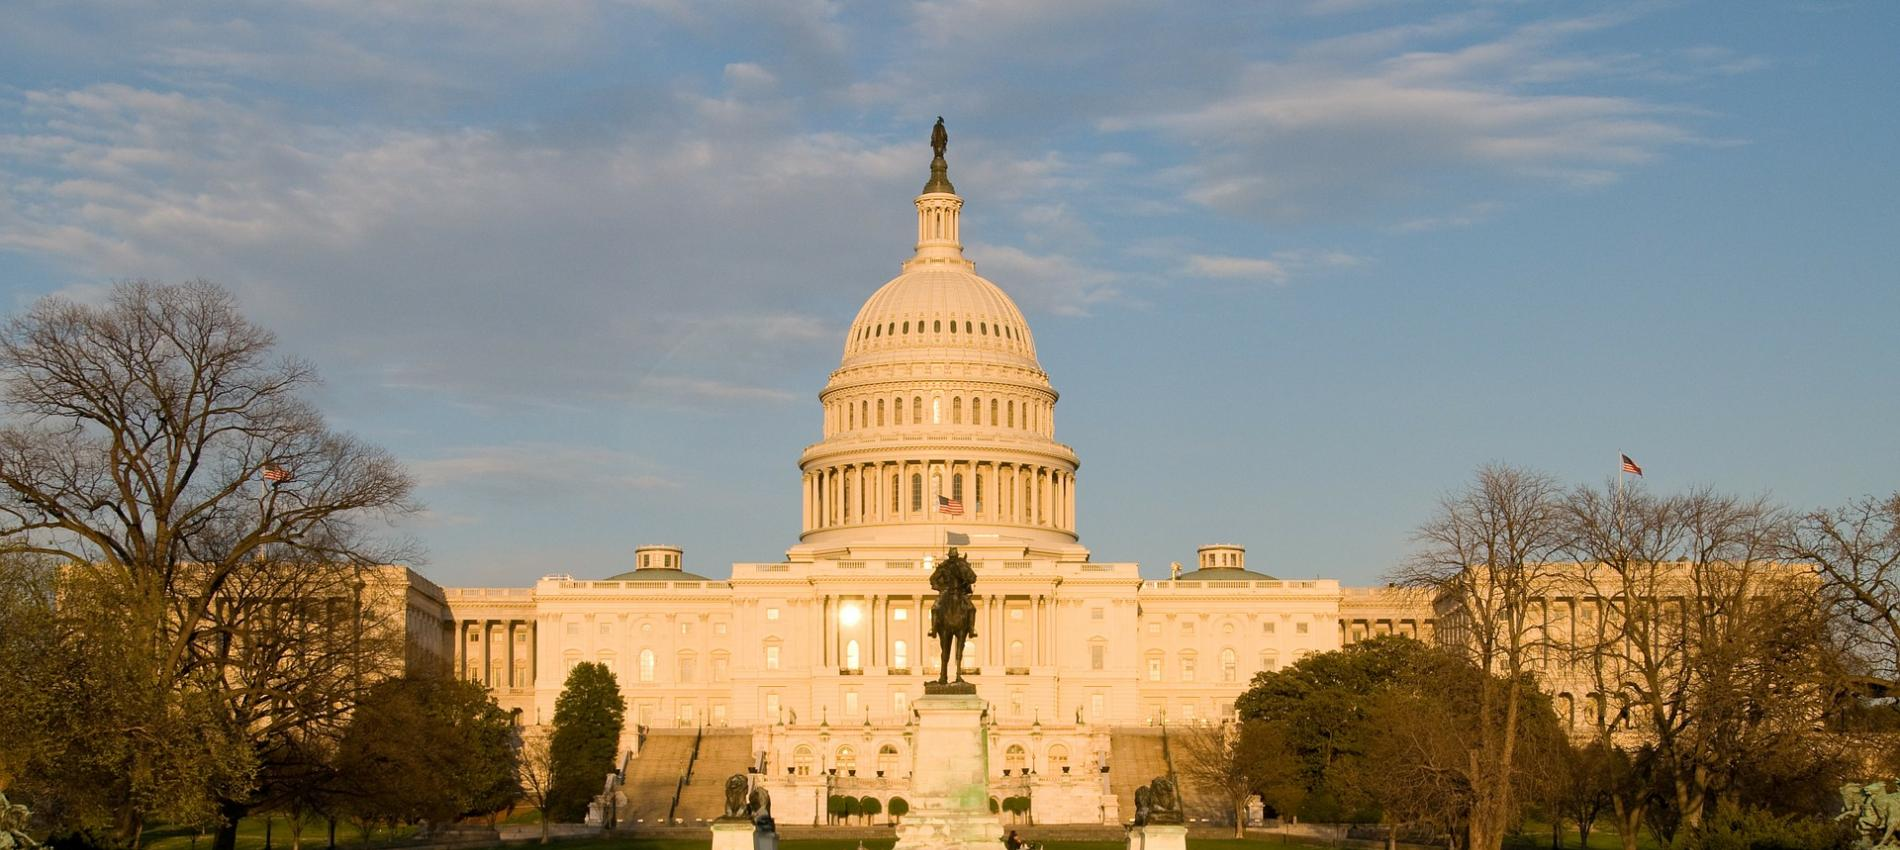 U.S. Capitol Building Front Image by Art Bromage from Pixabay